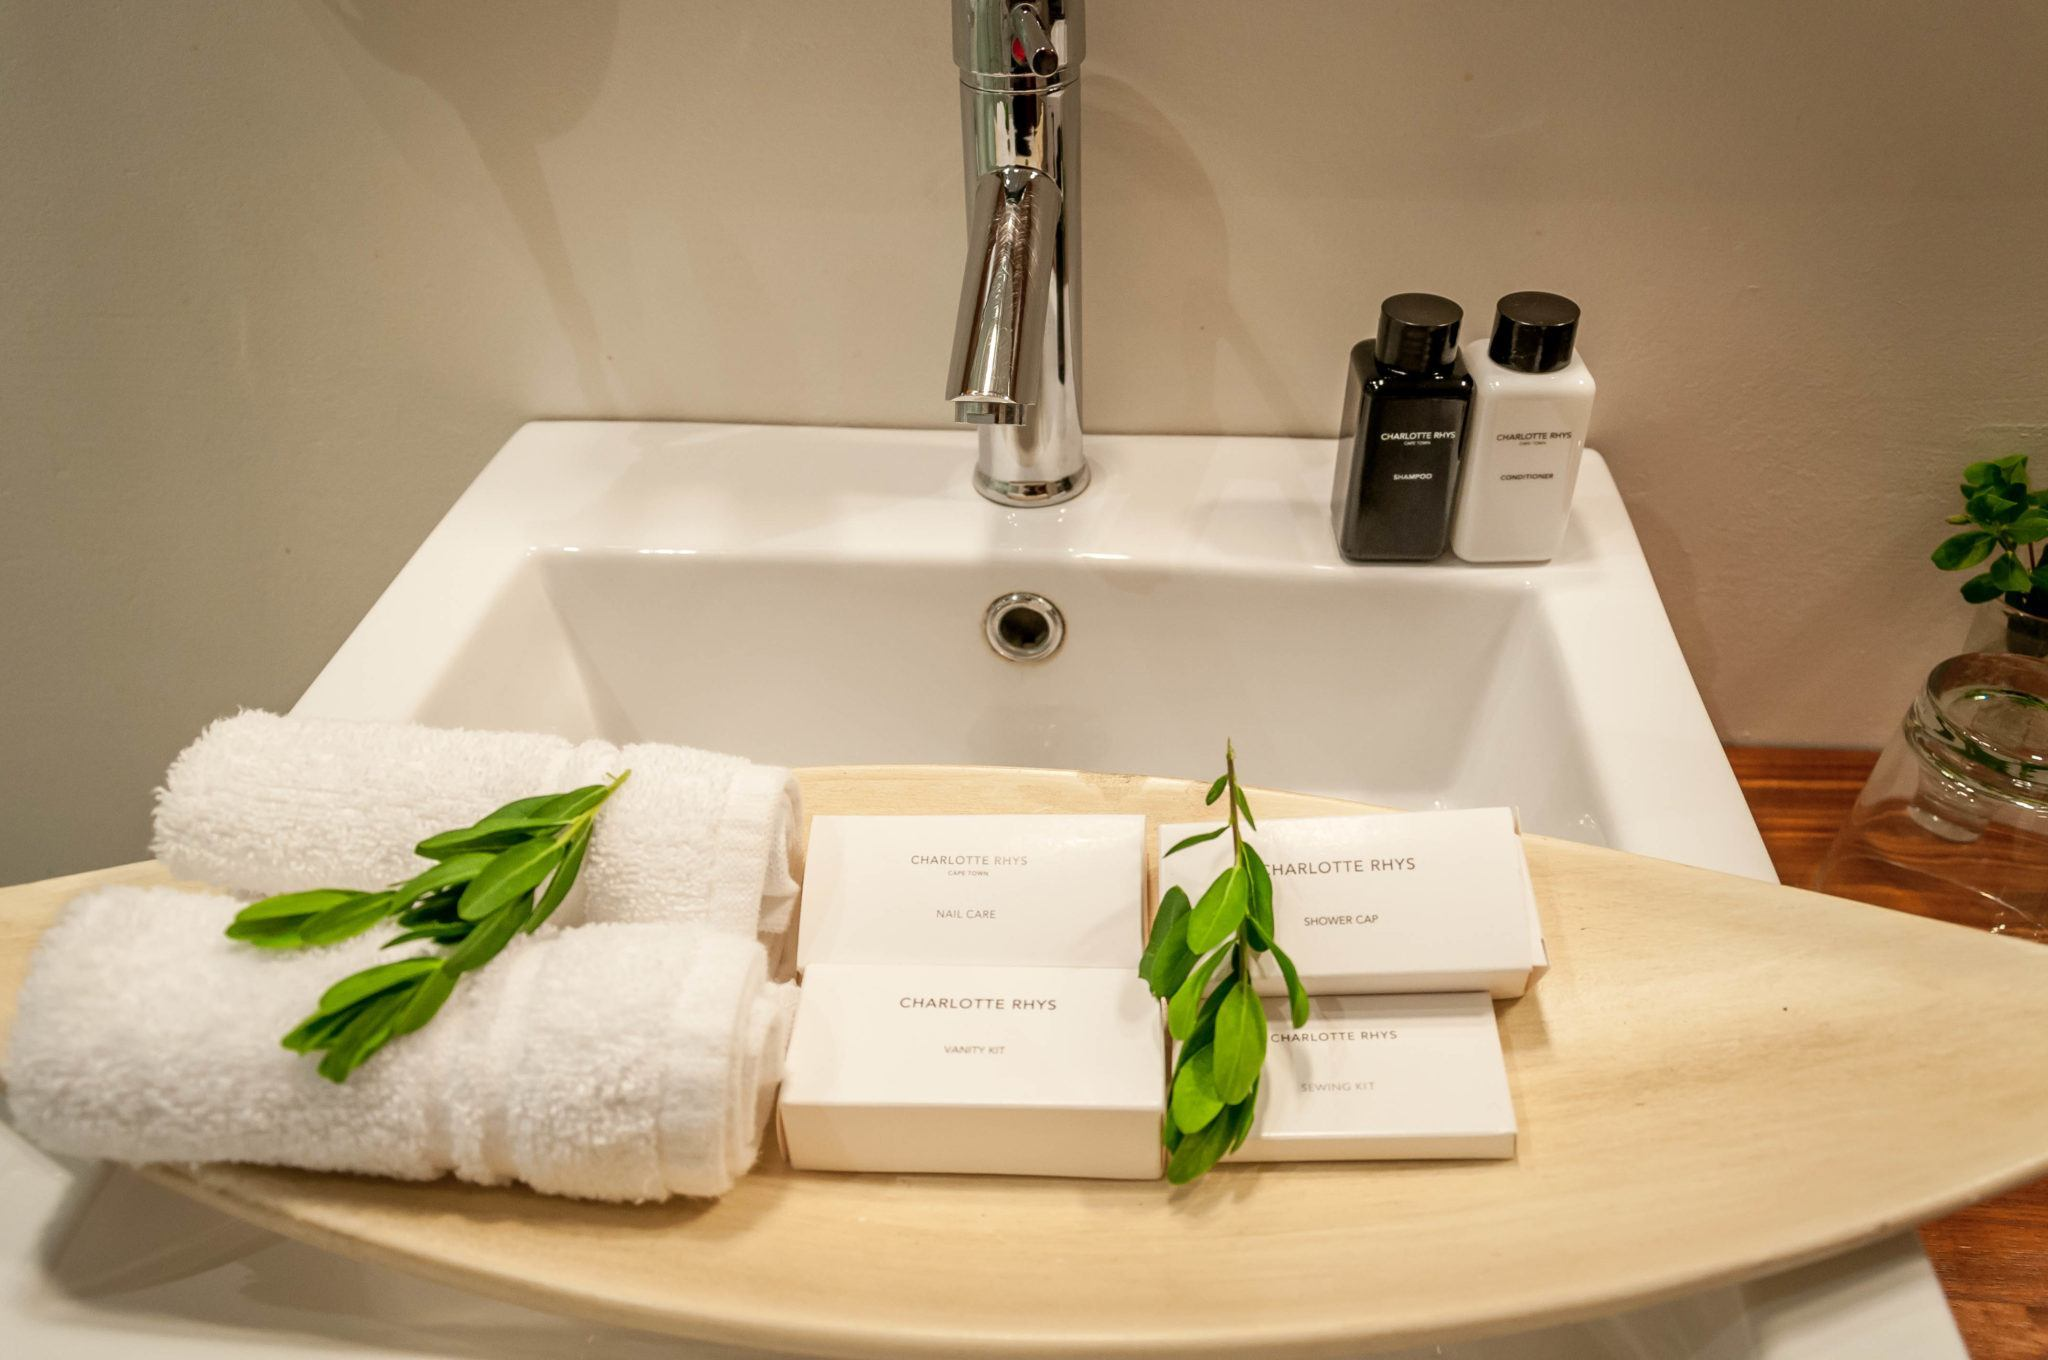 Bathroom amenities from Charlotte Rhys Cape Town.